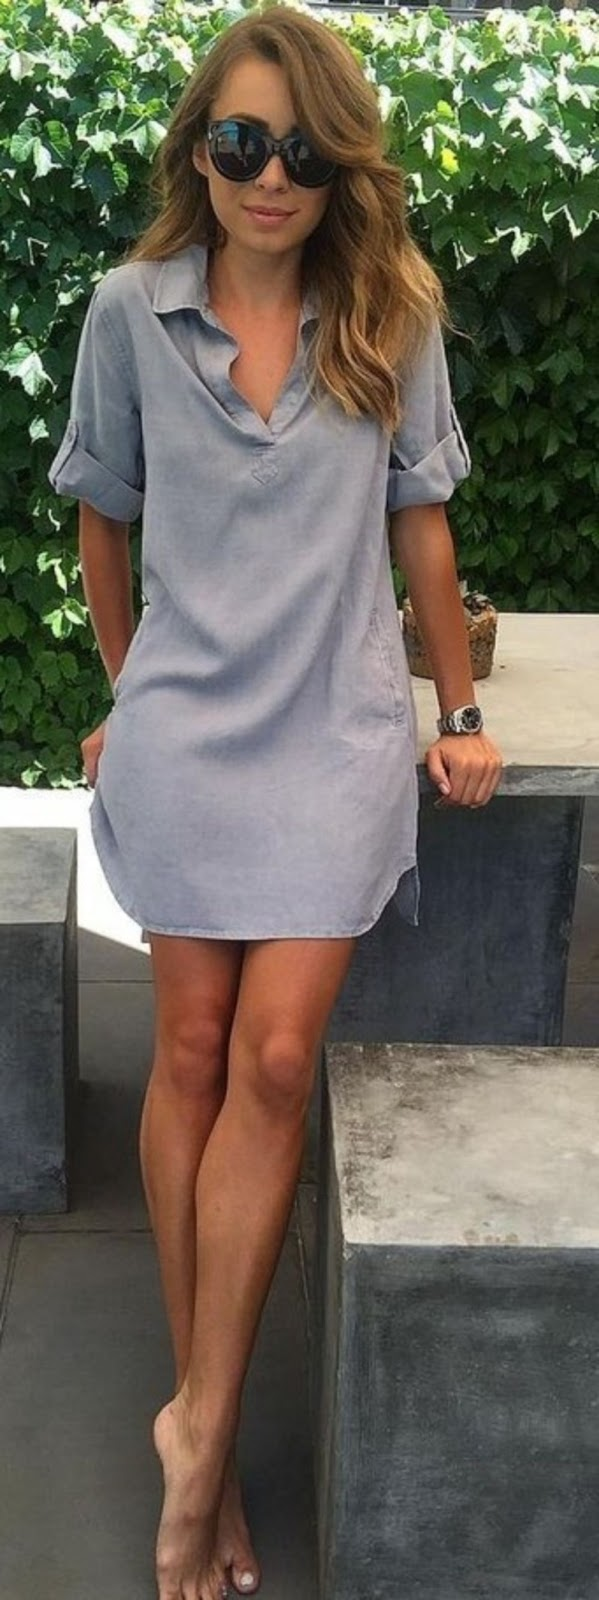 simple summer outfit / sunglasses and shirt dress